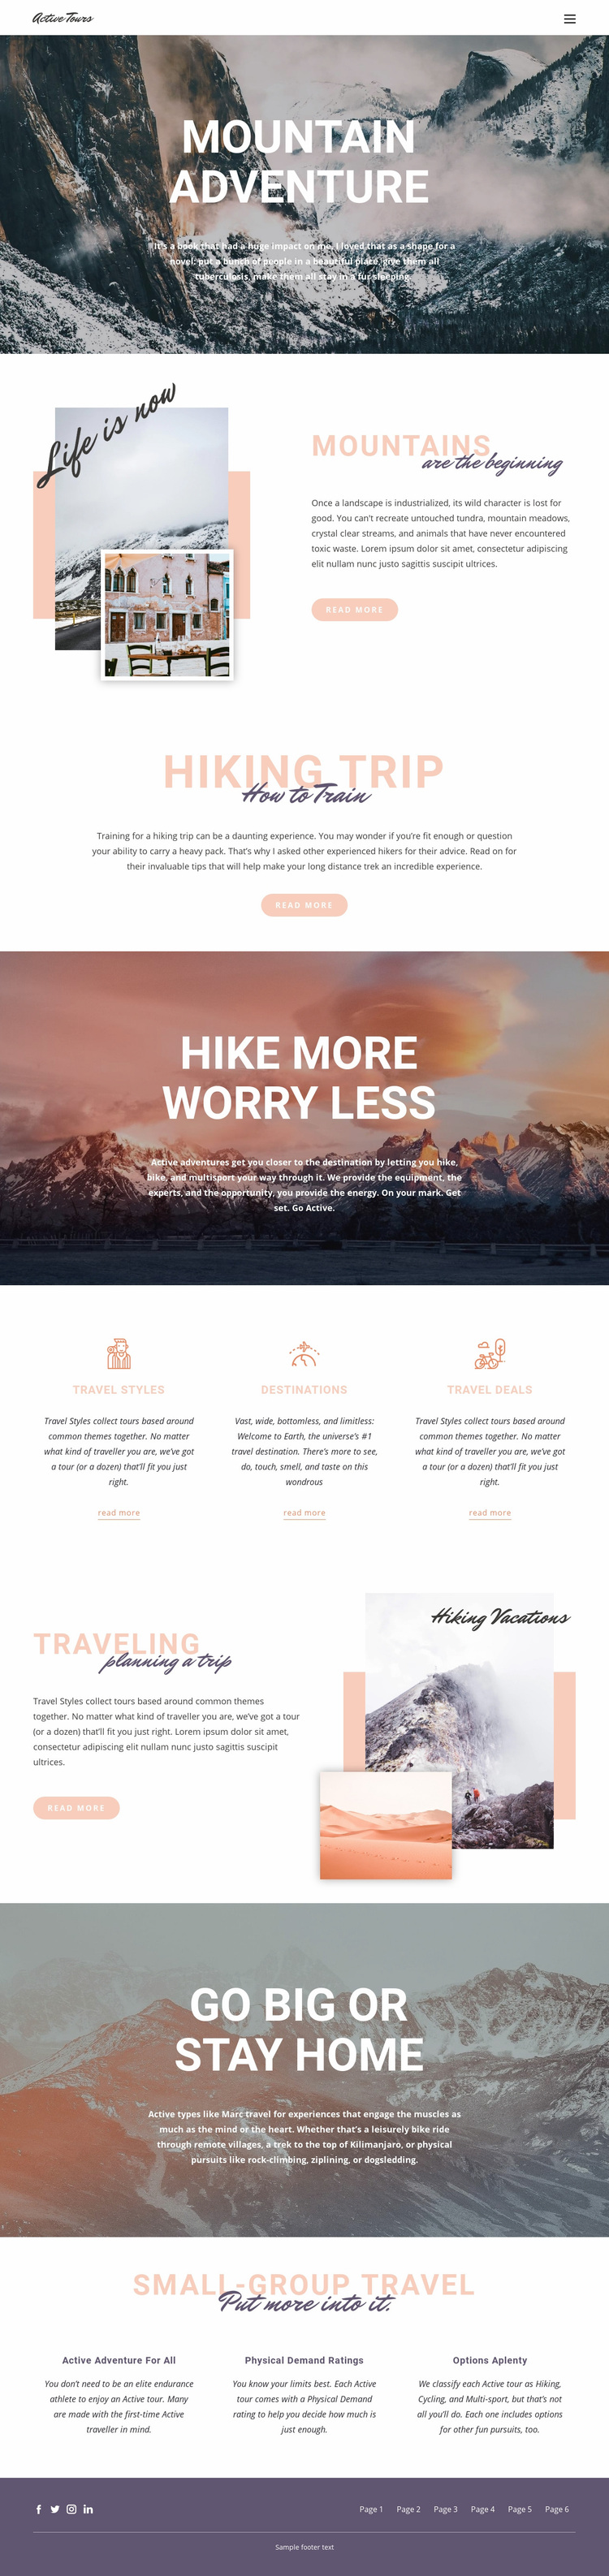 Guided backpacking trips Web Page Designer